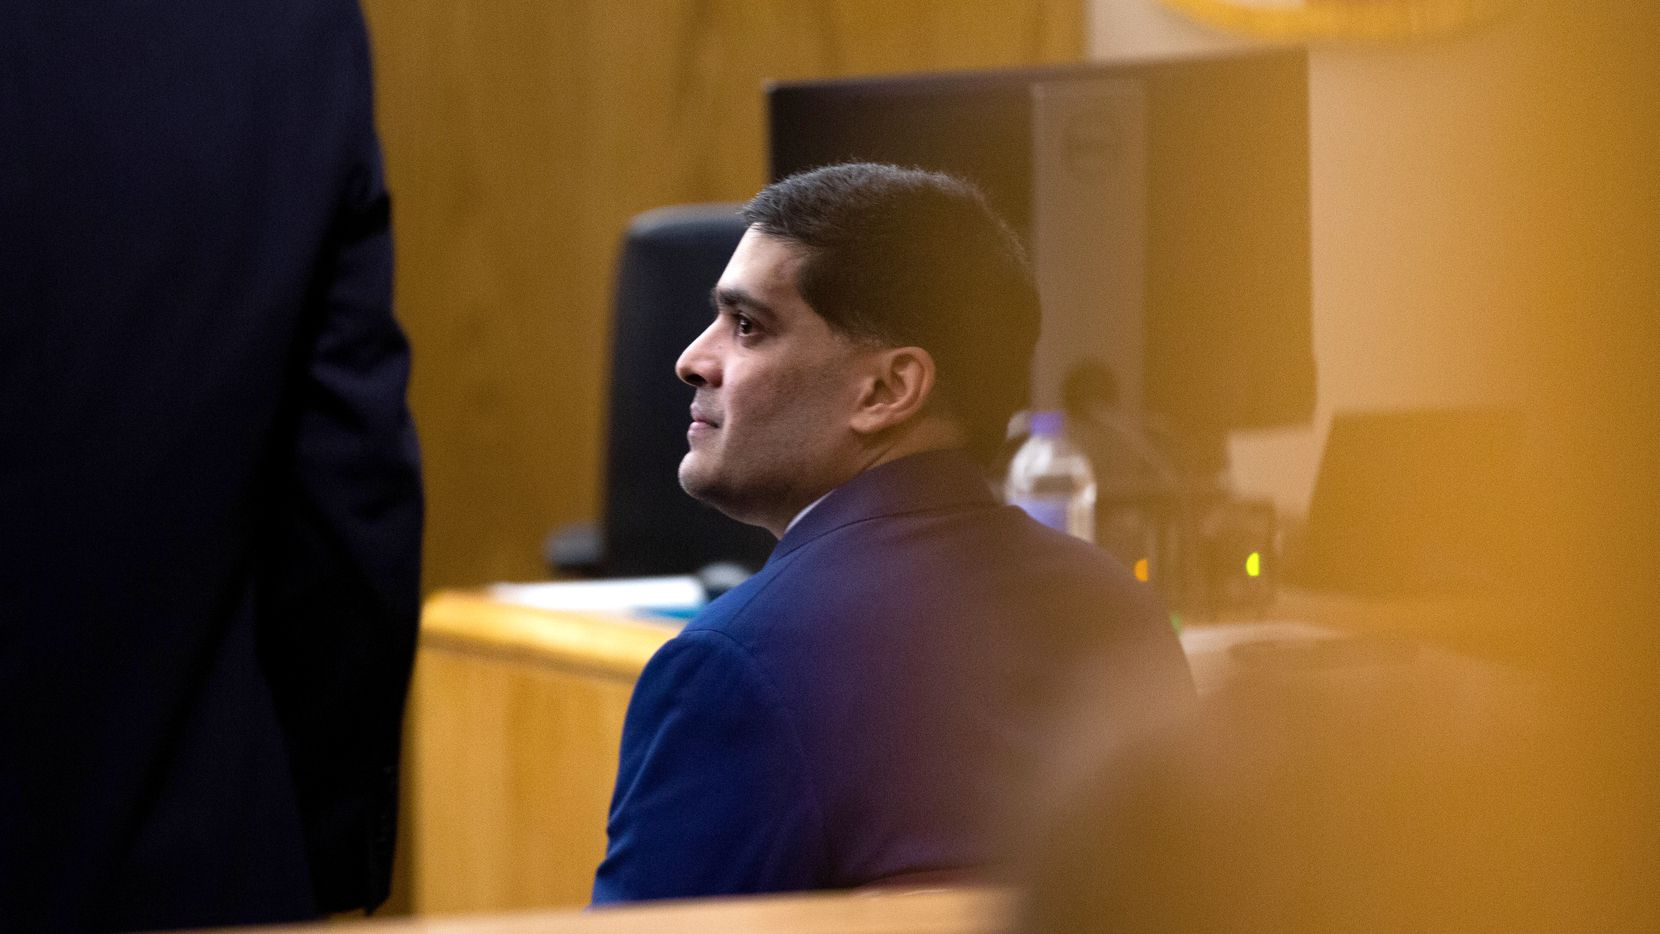 Defendant Wesley Mathews sits during a recess at his sentencing hearing in the 282nd Judicial District Court at the Frank Crowley Courthouse on Tuesday, June 25, 2019. Mathews, who is accused of killing his 3-year-old adopted daughter, Sherin Mathews, plead guilty to injury to a child by omission on Monday